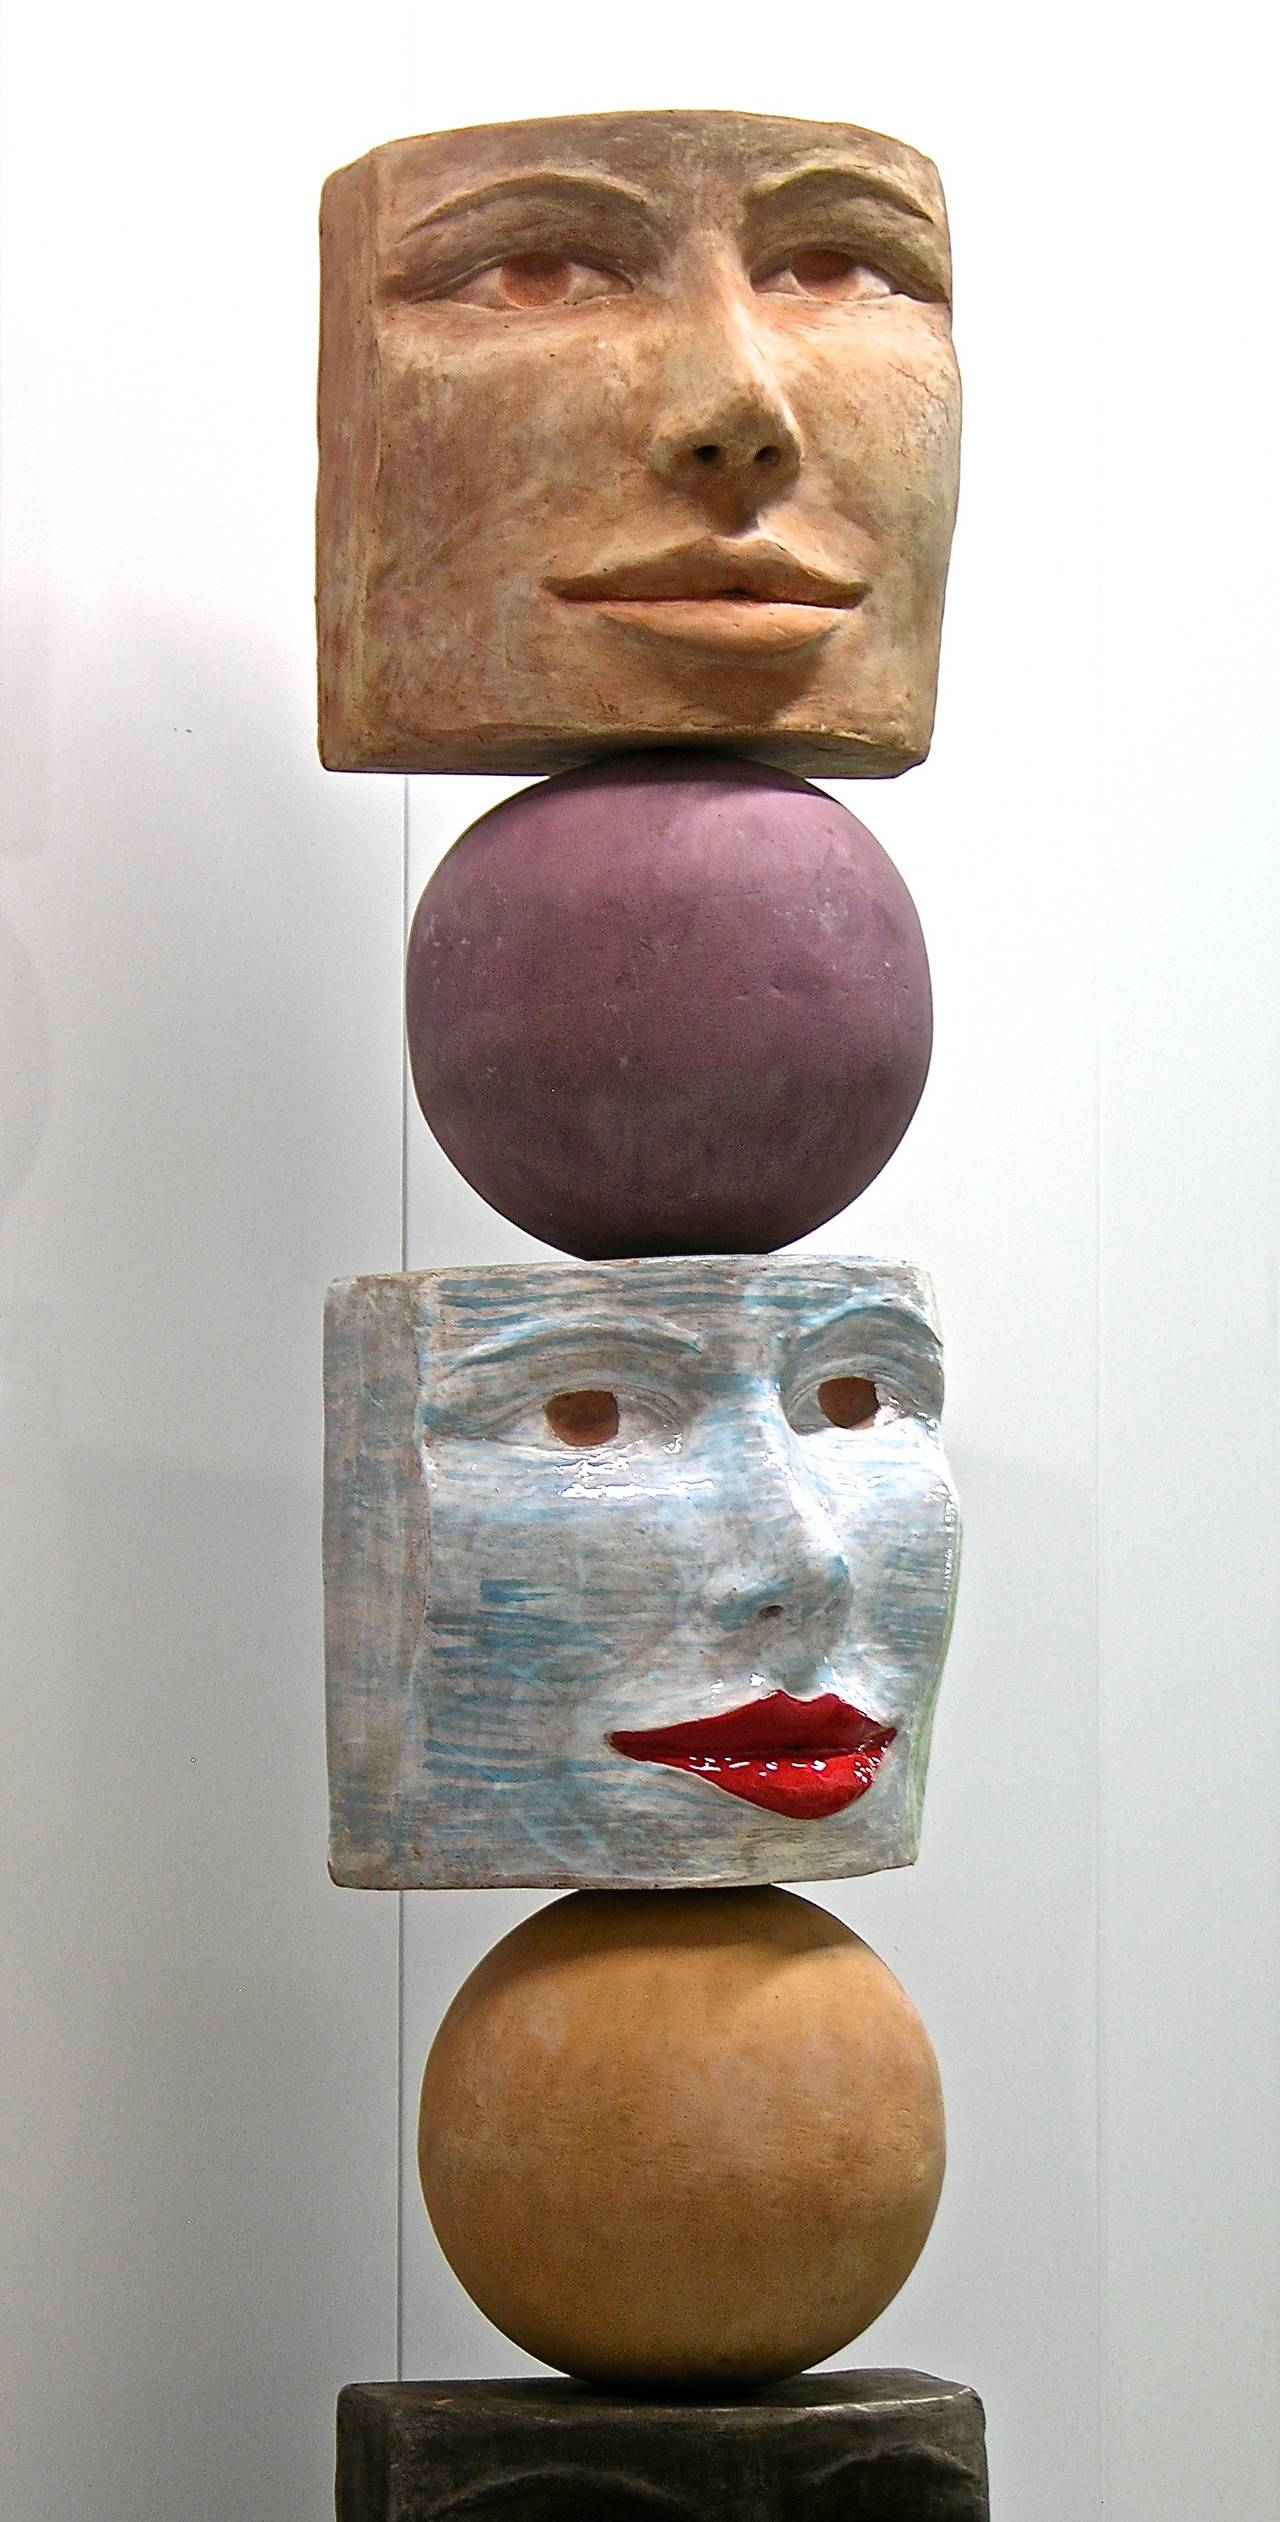 A contemporary Work of Art by the Italian artist Ginestroni. Entirely handmade and sculpted in brown and gray anthracite terra cotta. Two of the five head sculptures have been fired enameled in a unique sky blue and caramel brown glossy look with